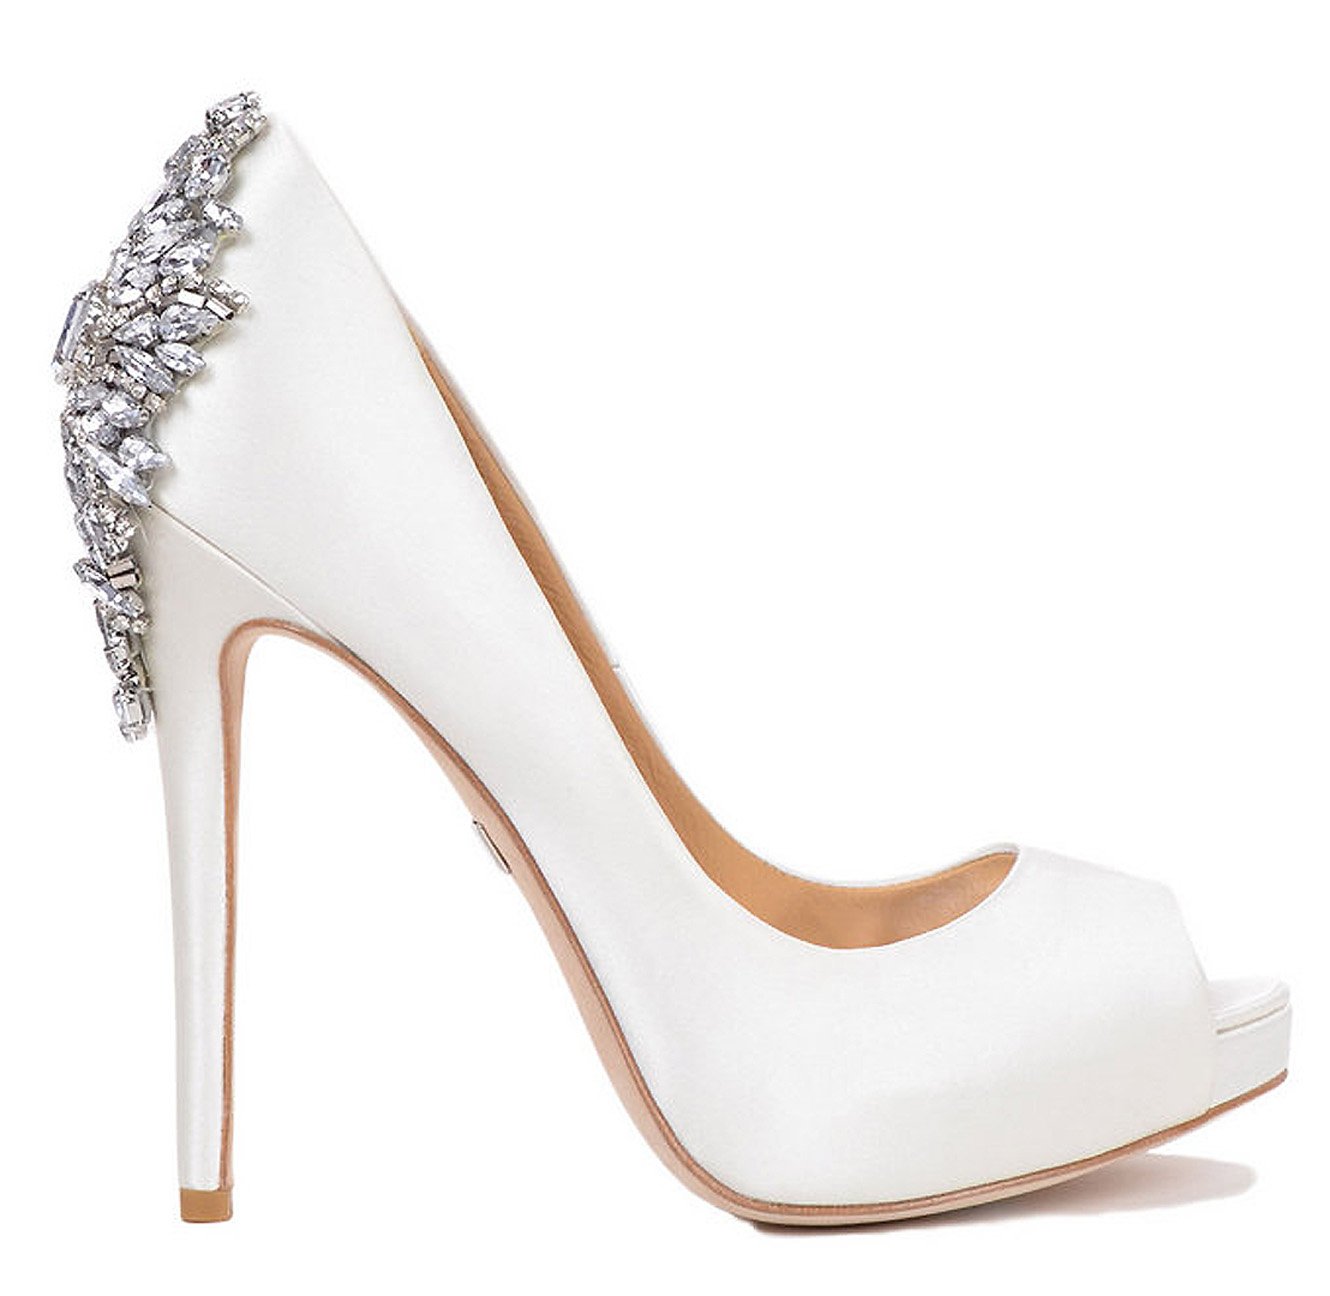 Delicate and beautiful white wedding shoes